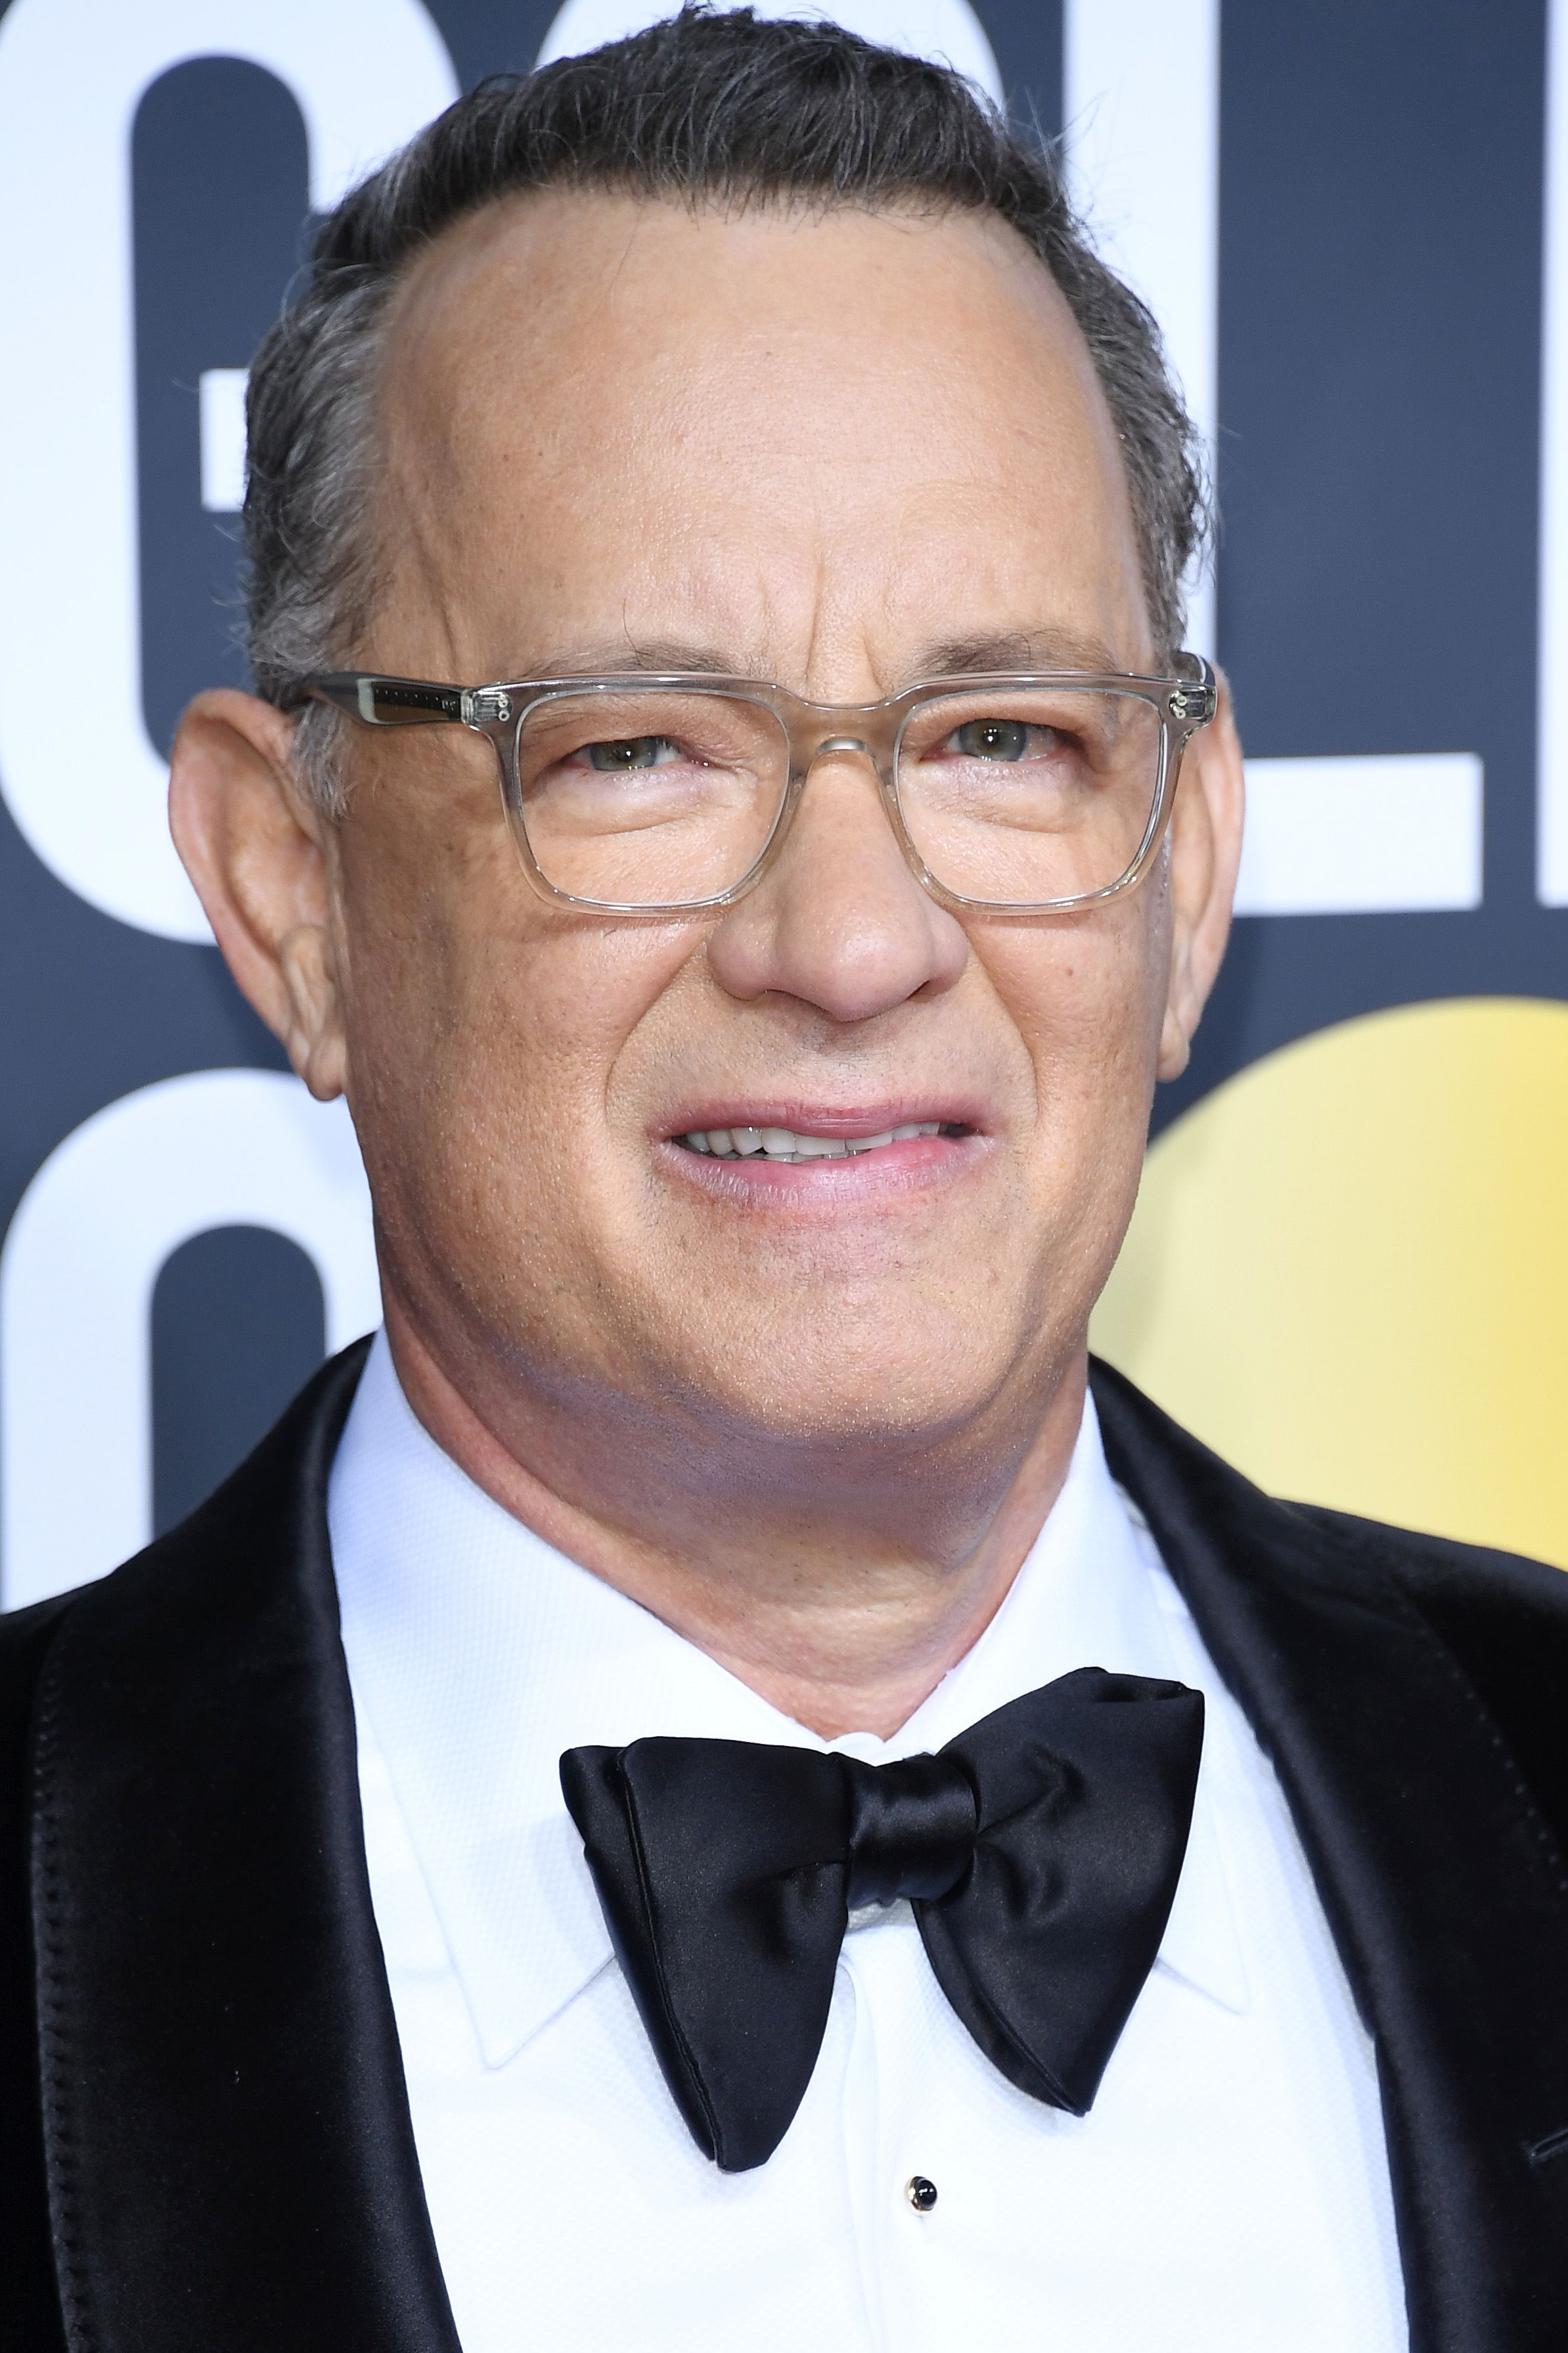 Tom Hanks at the 77th Annual Golden Globe Awards at The Beverly Hilton Hotel on January 05, 2020 in Beverly Hills, California | Photo: Getty Images